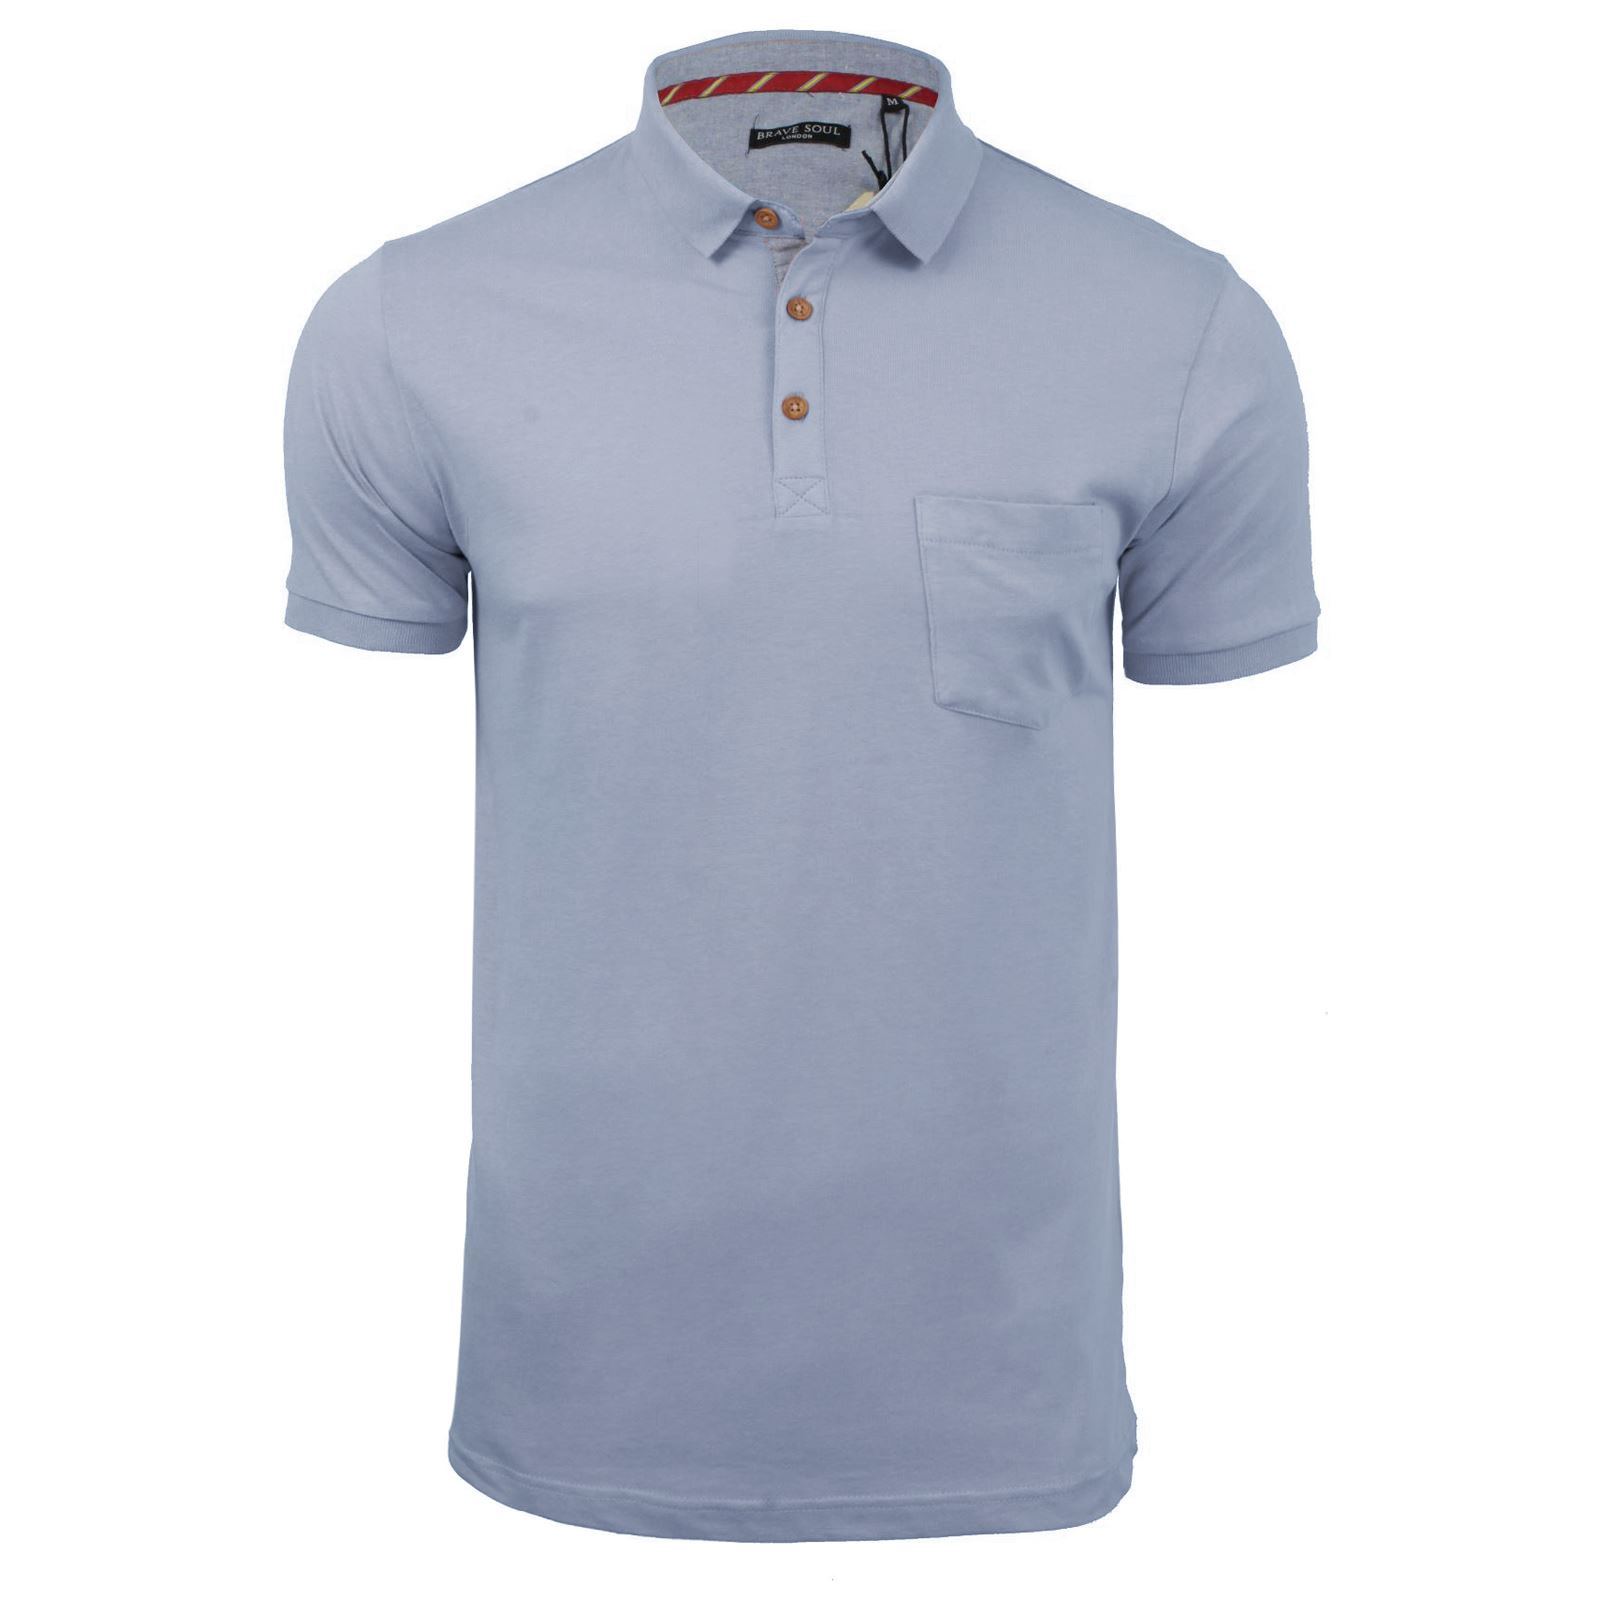 Mens-Polo-T-Shirt-Brave-Soul-Glover-Cotton-Collared-Short-Sleeve-Casual-Top thumbnail 54